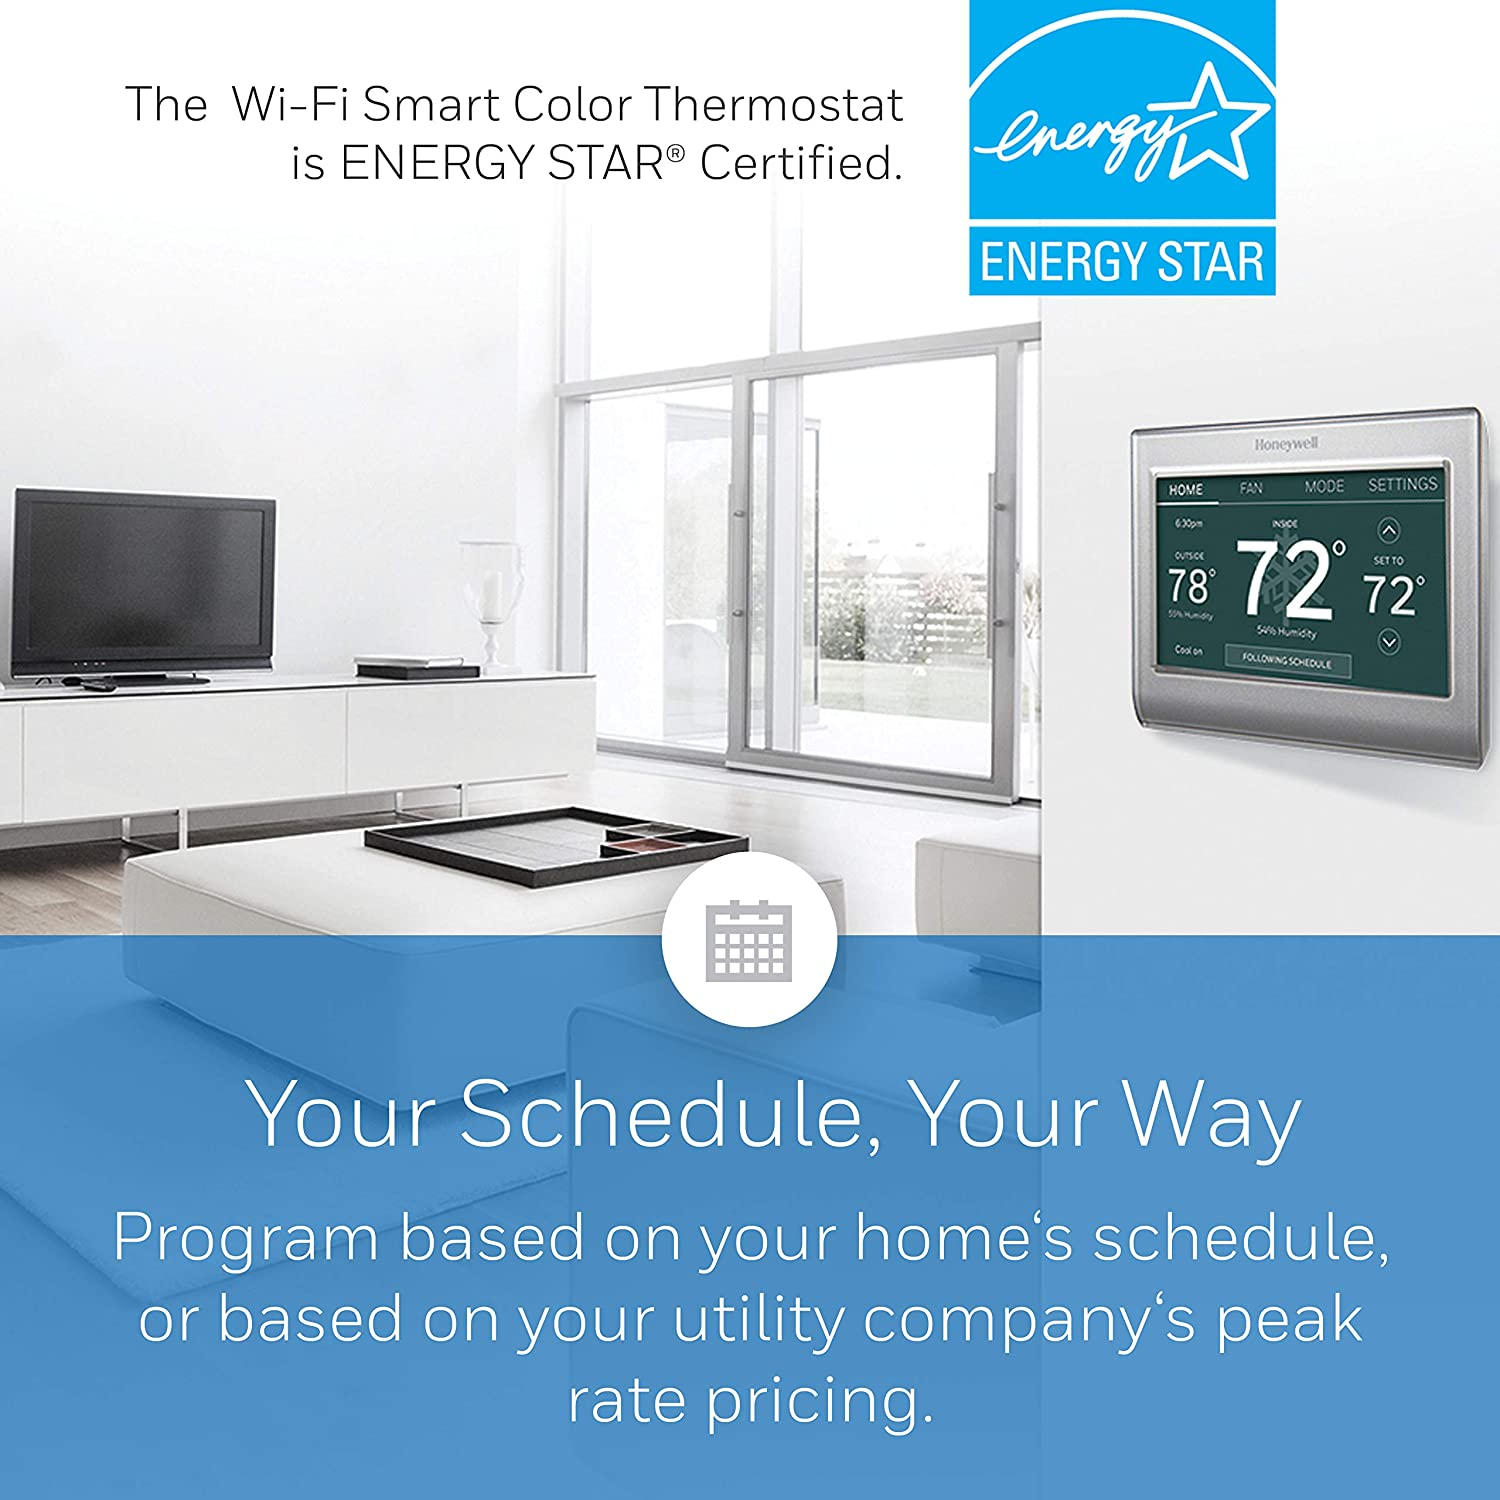 Honeywell RTH9585WF1004//W Wi-Fi Smart Color Programmable Thermostat